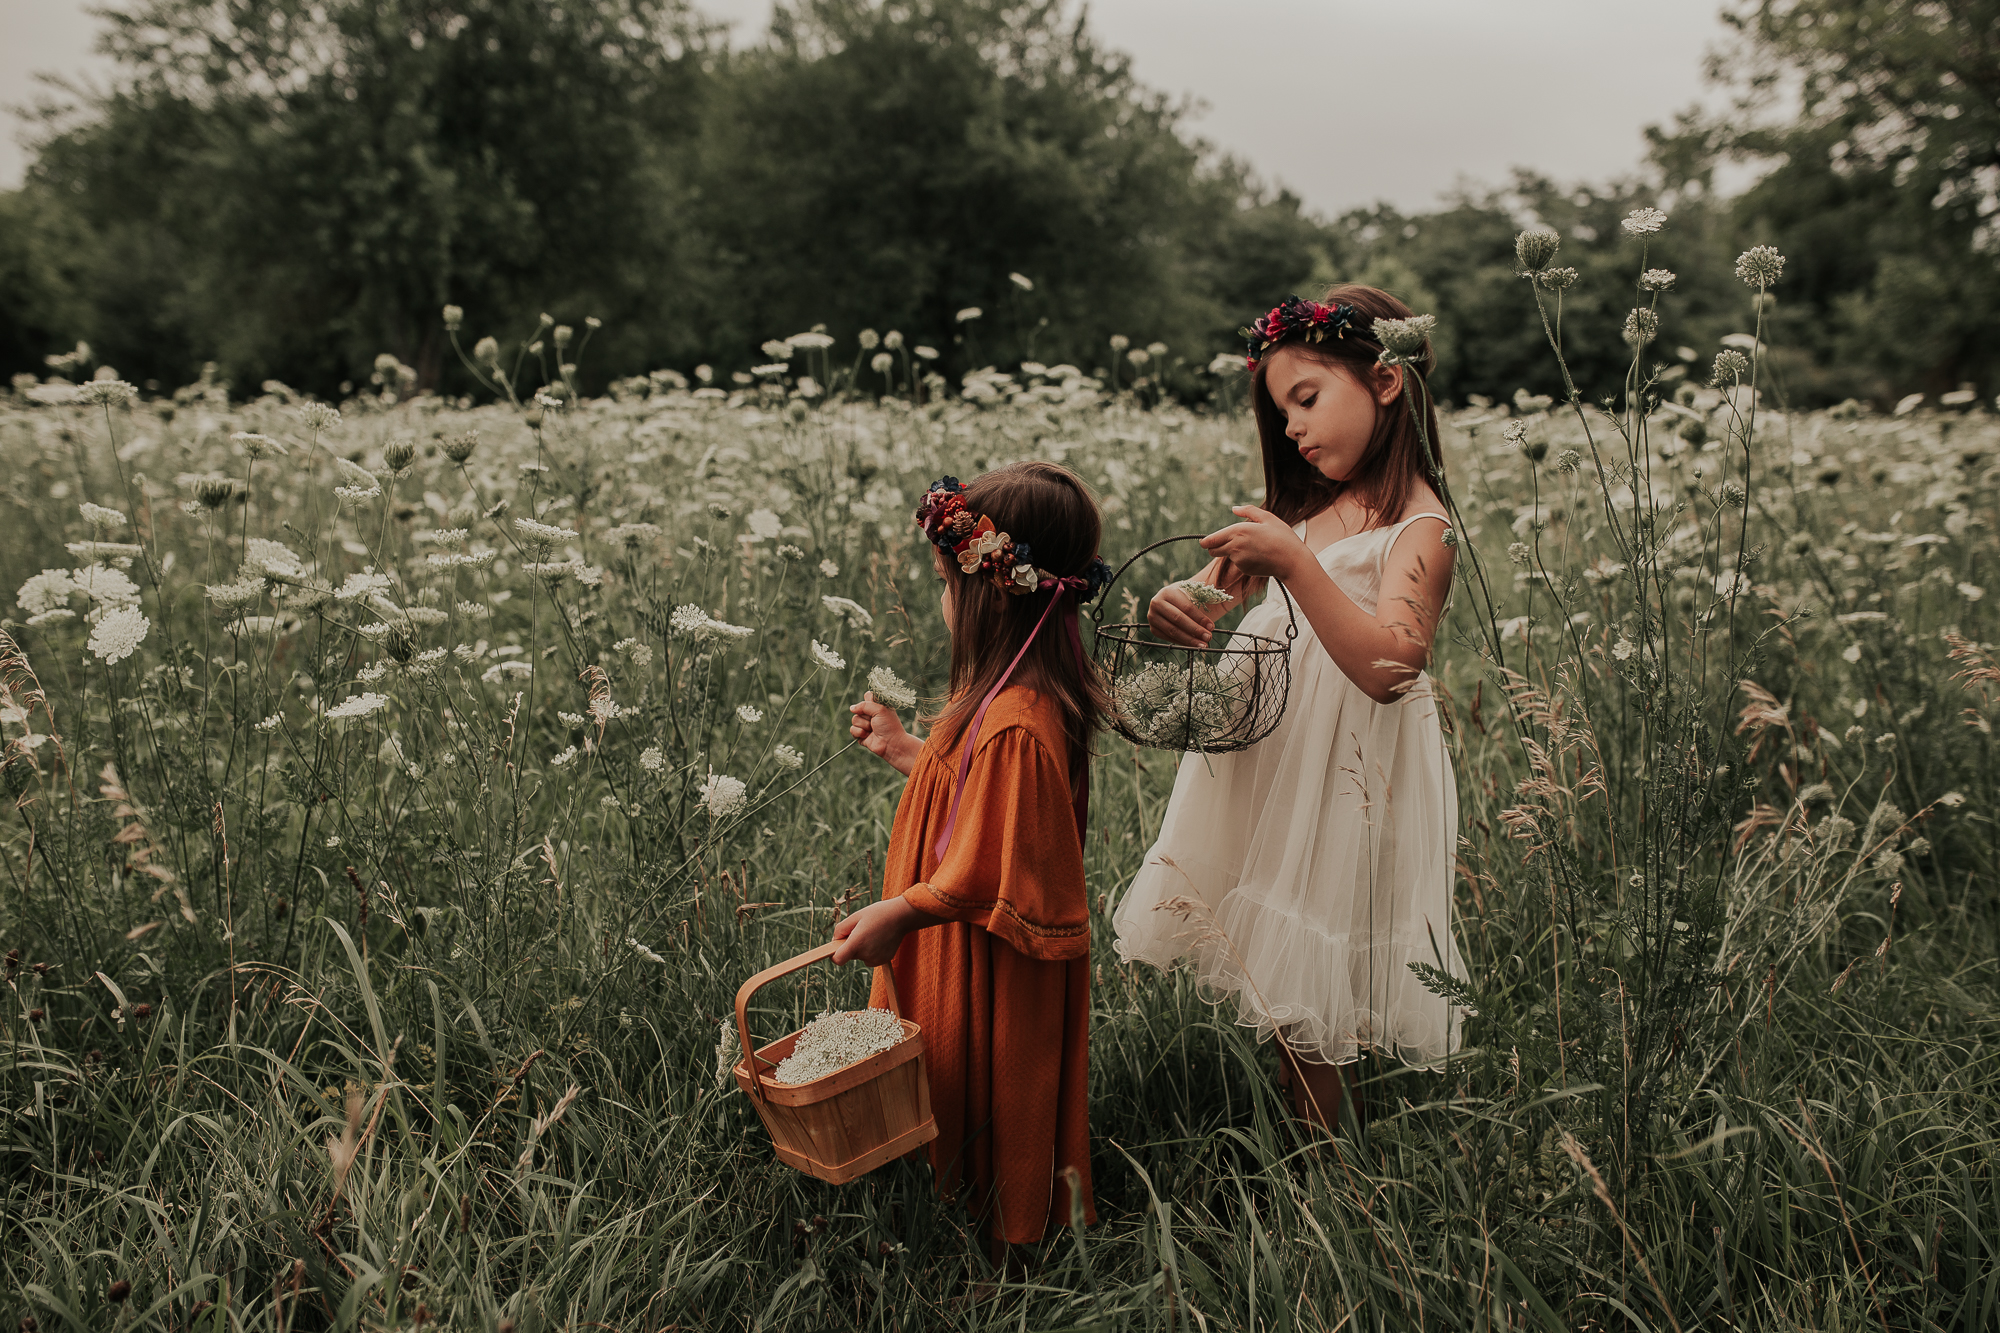 Salter-Girls-Flowers-Family-Session-jessesalter.photography.jpg